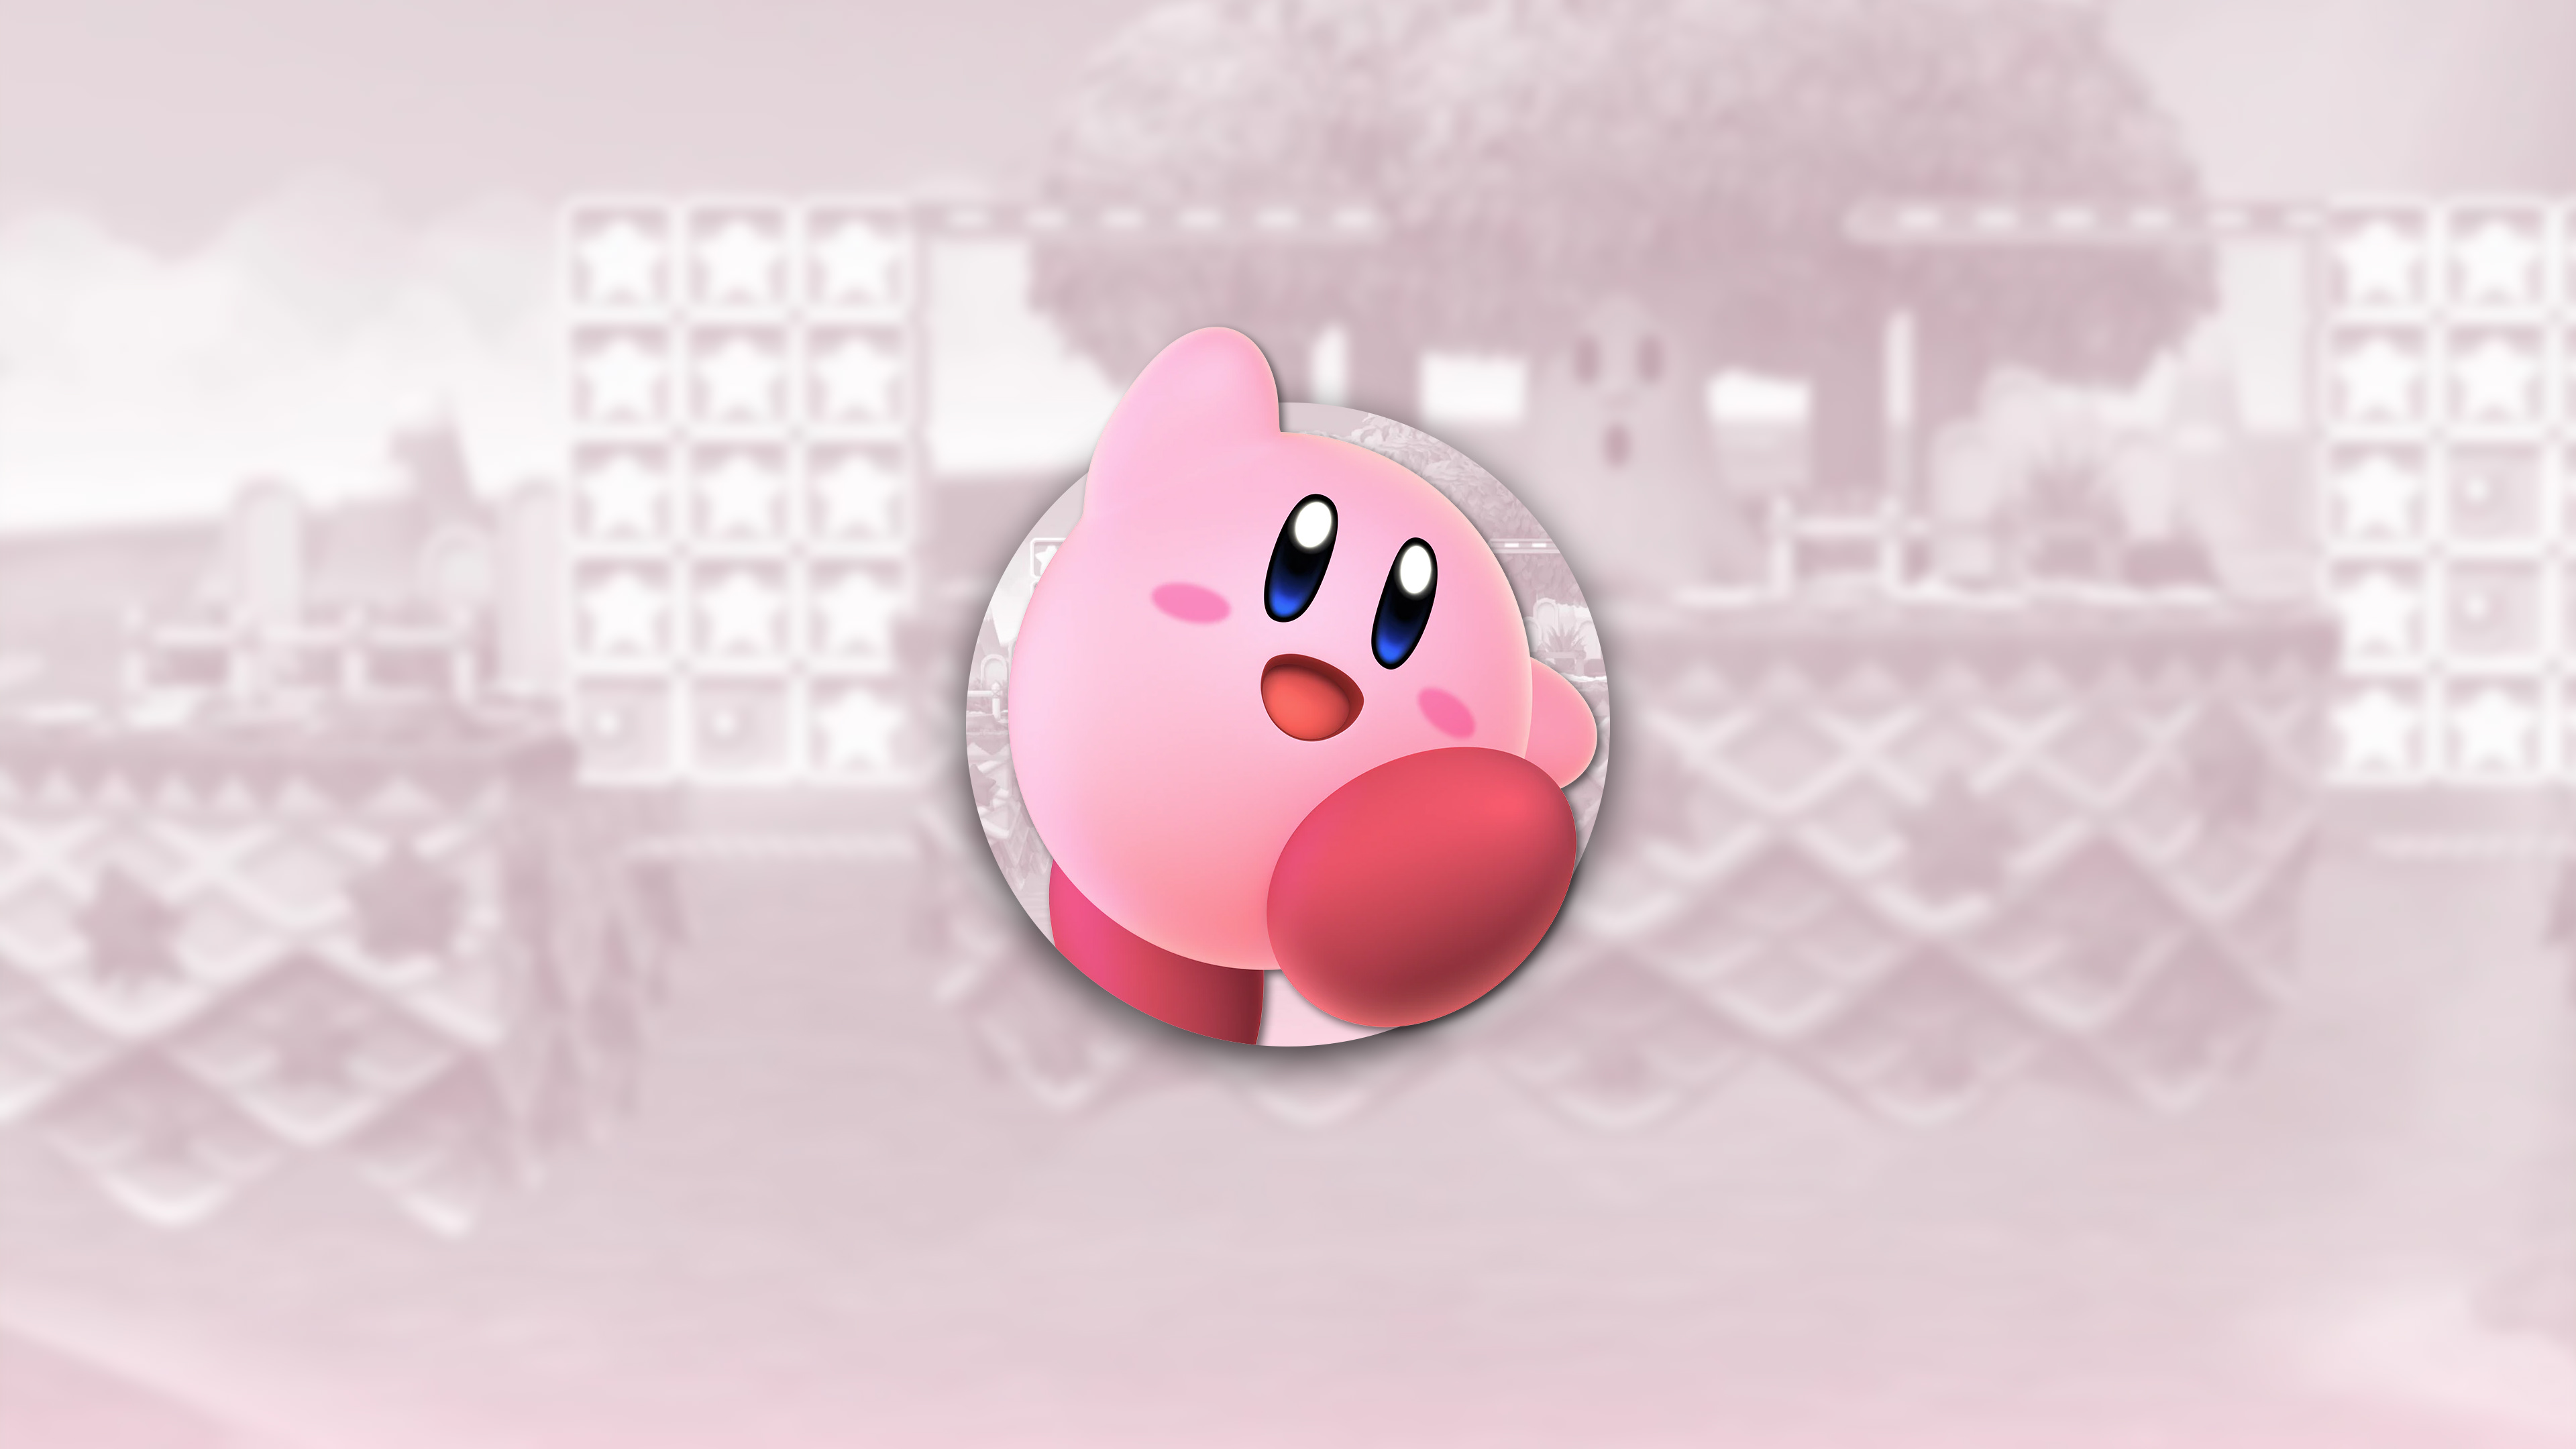 super smash bros ultimate kirby uhd 4k wallpaper